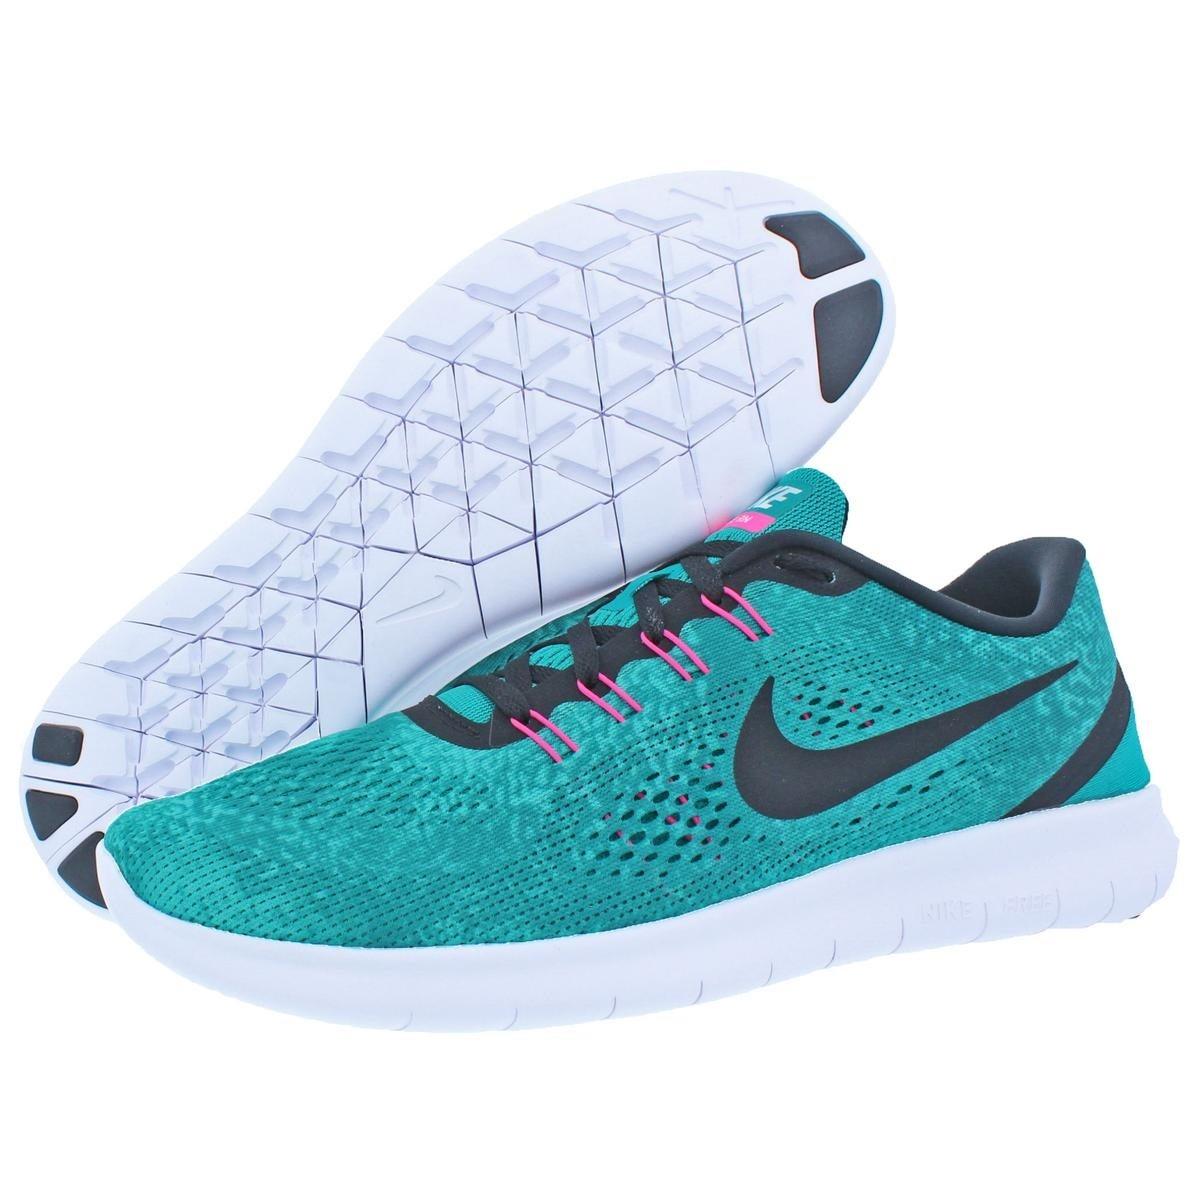 482e933443d Shop Nike Womens Free RN Print Running Shoes Lightweight Flexible - Free  Shipping On Orders Over  45 - Overstock - 22311212